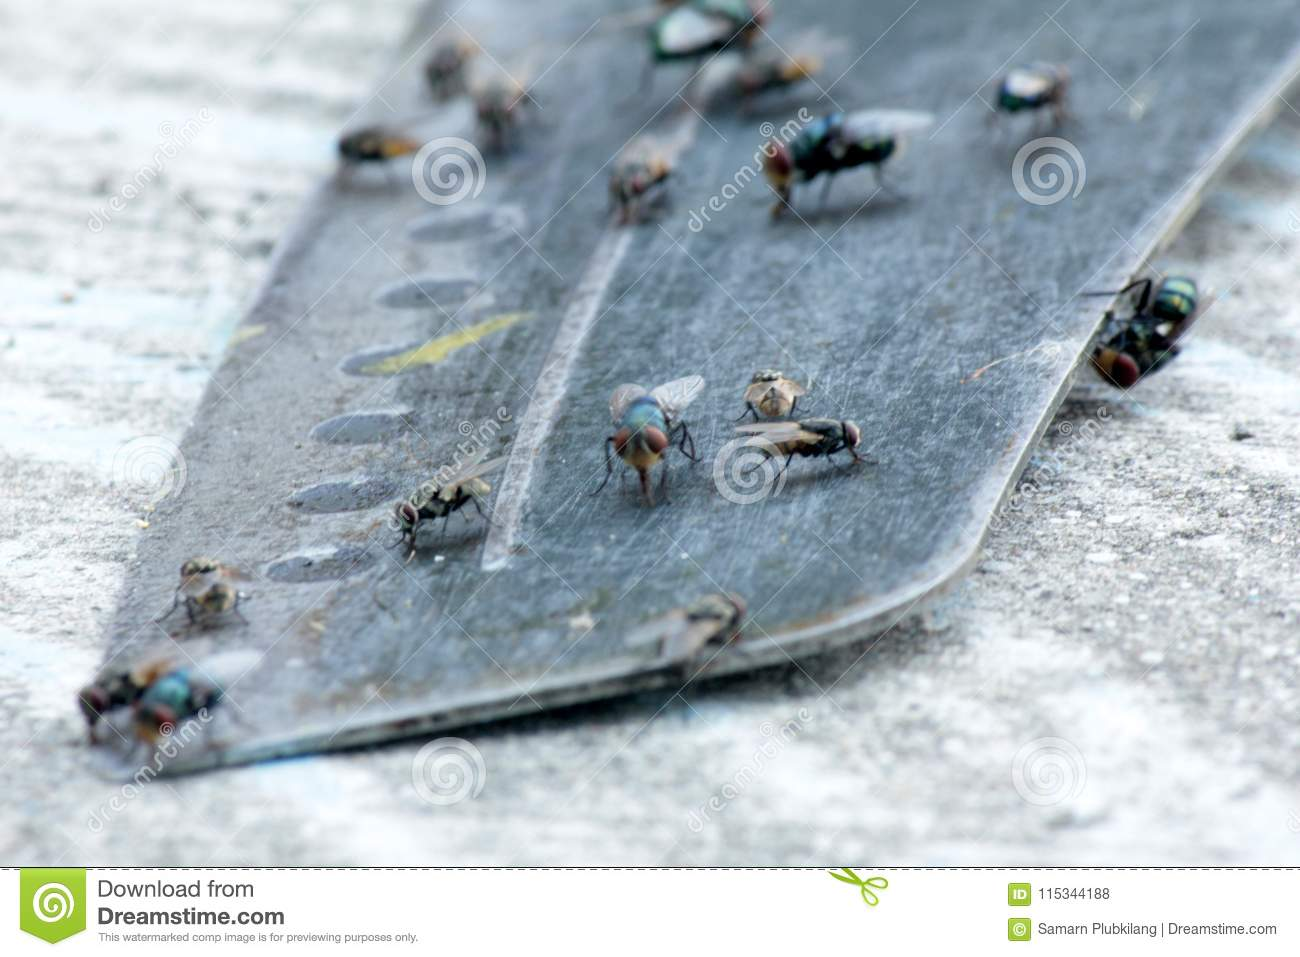 House Fly, Food Contamination Hygiene Concept. Stock Photo - Image ...